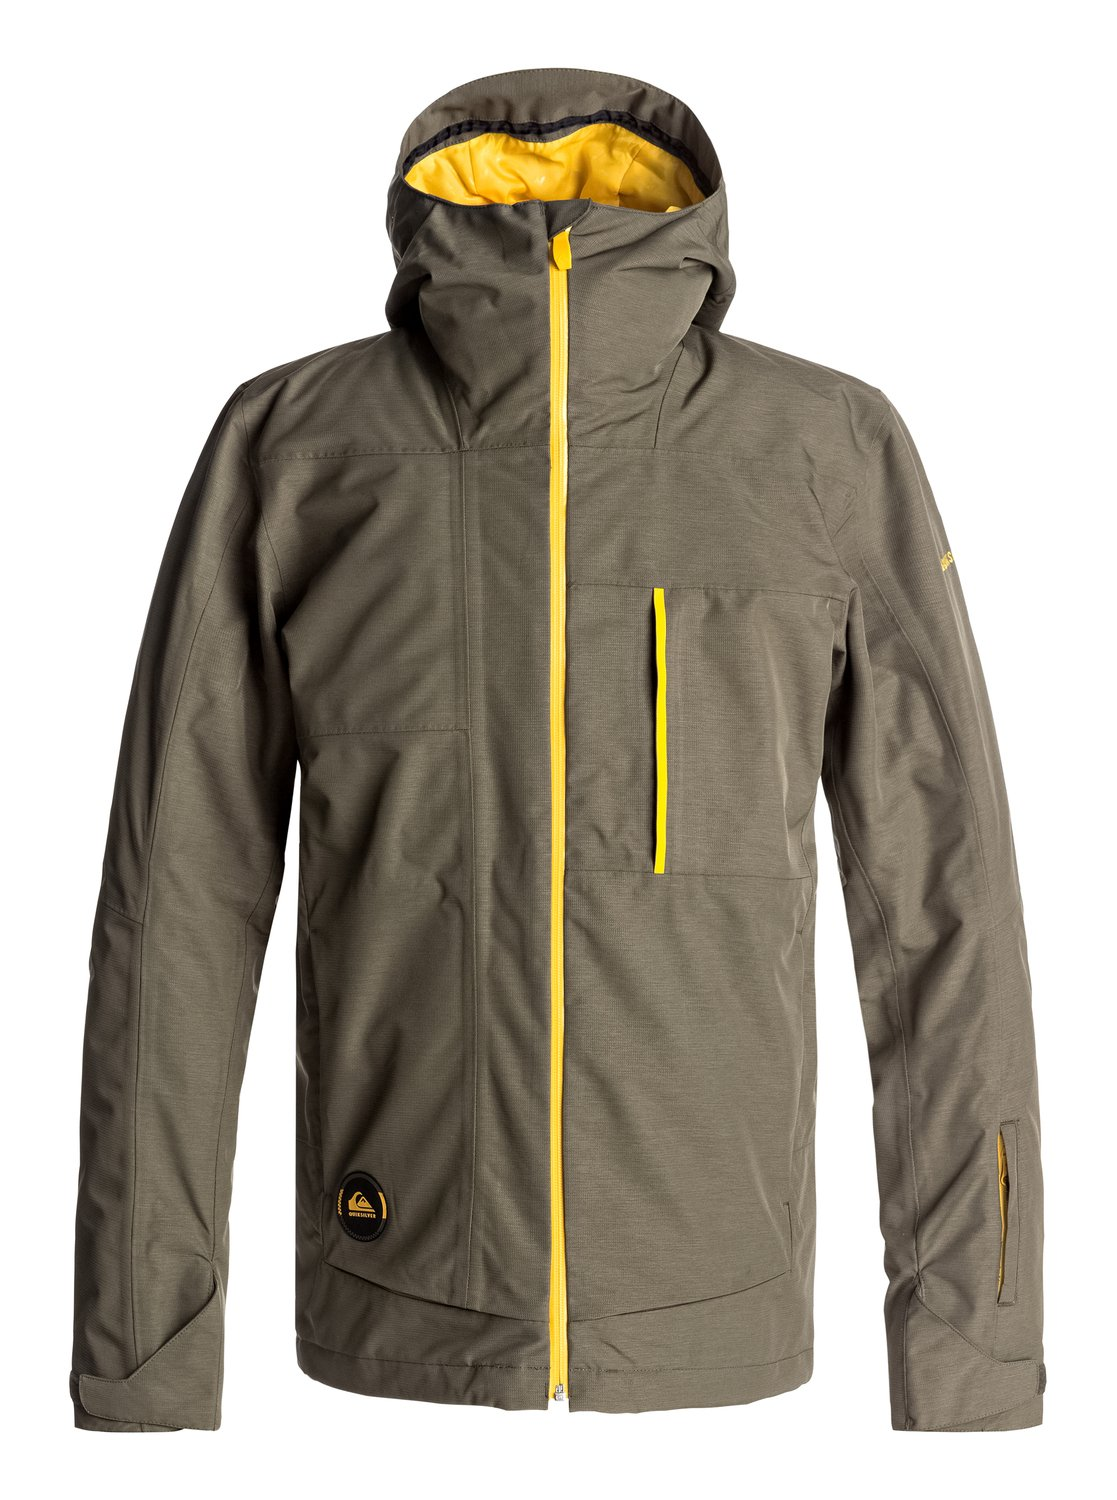 6969b919b Sycamore - Snow Jacket for Men